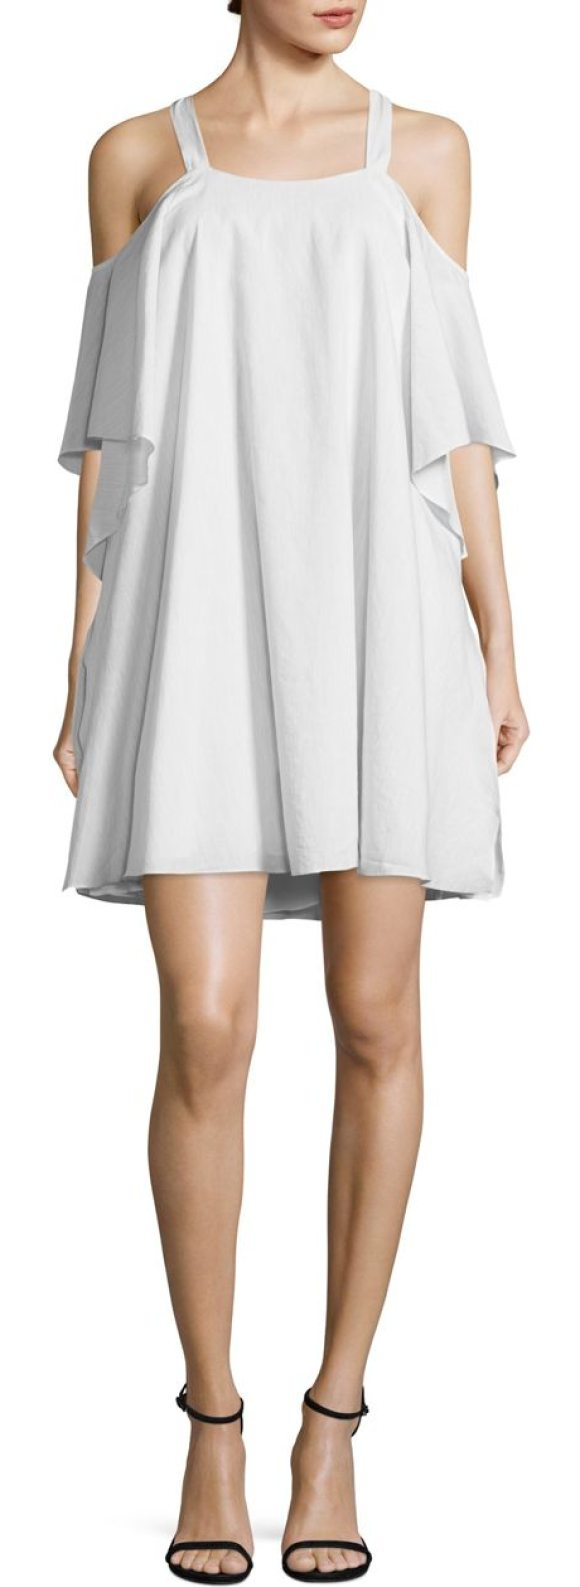 Halston flowy cold shoulder dress in light grey - Flowy dress designed with tie-up detail on shoulders....